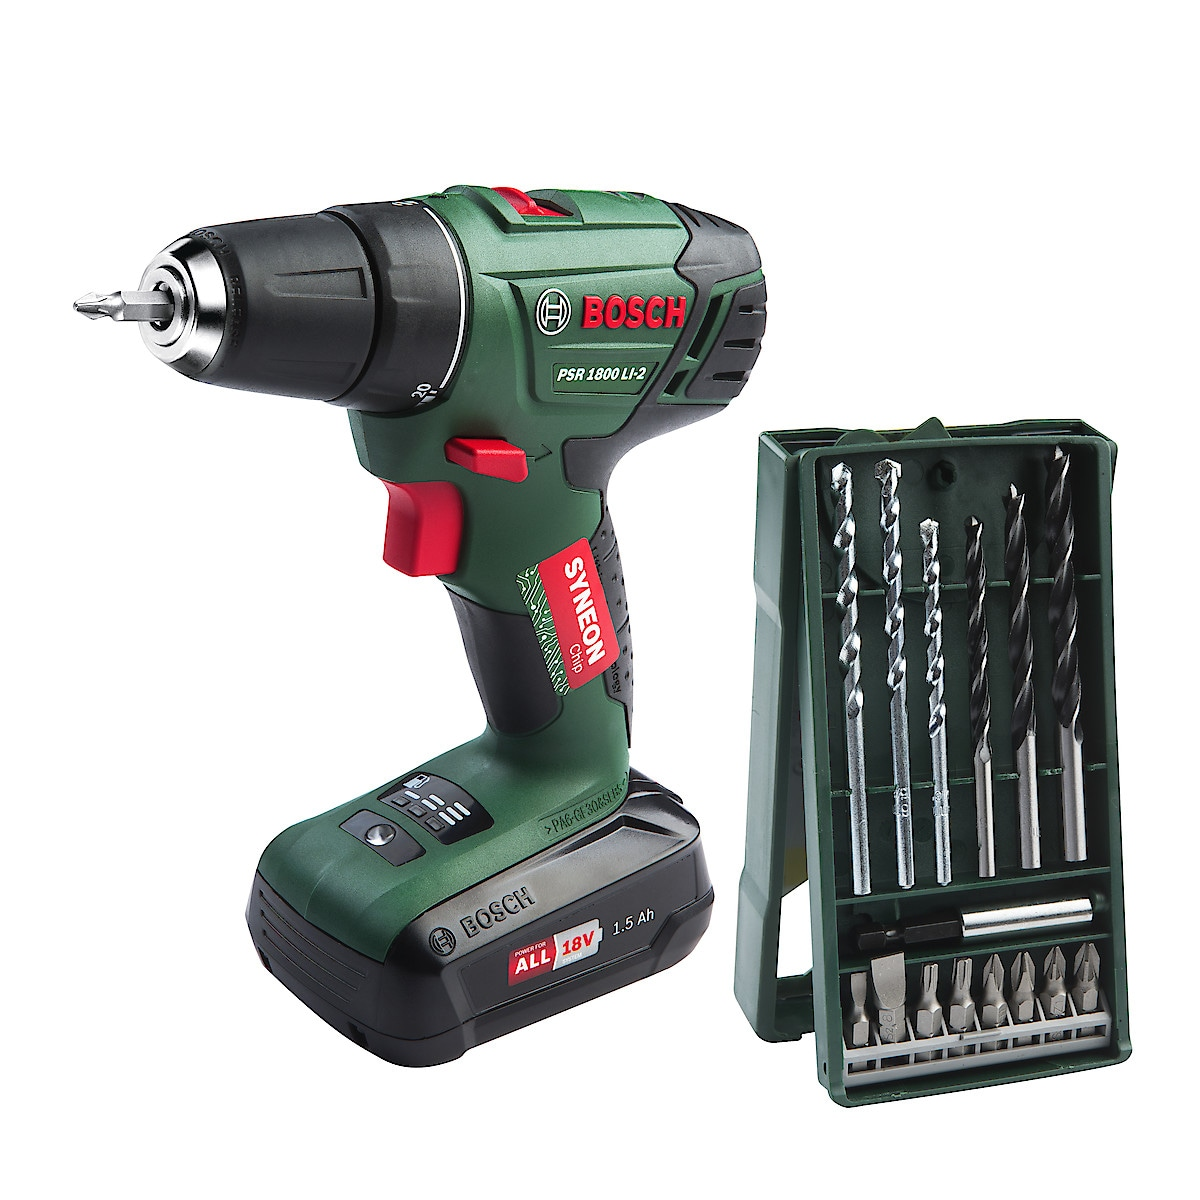 Bosch PSR 1800 LI 2 drill med Step & Workbox | Clas Ohlson